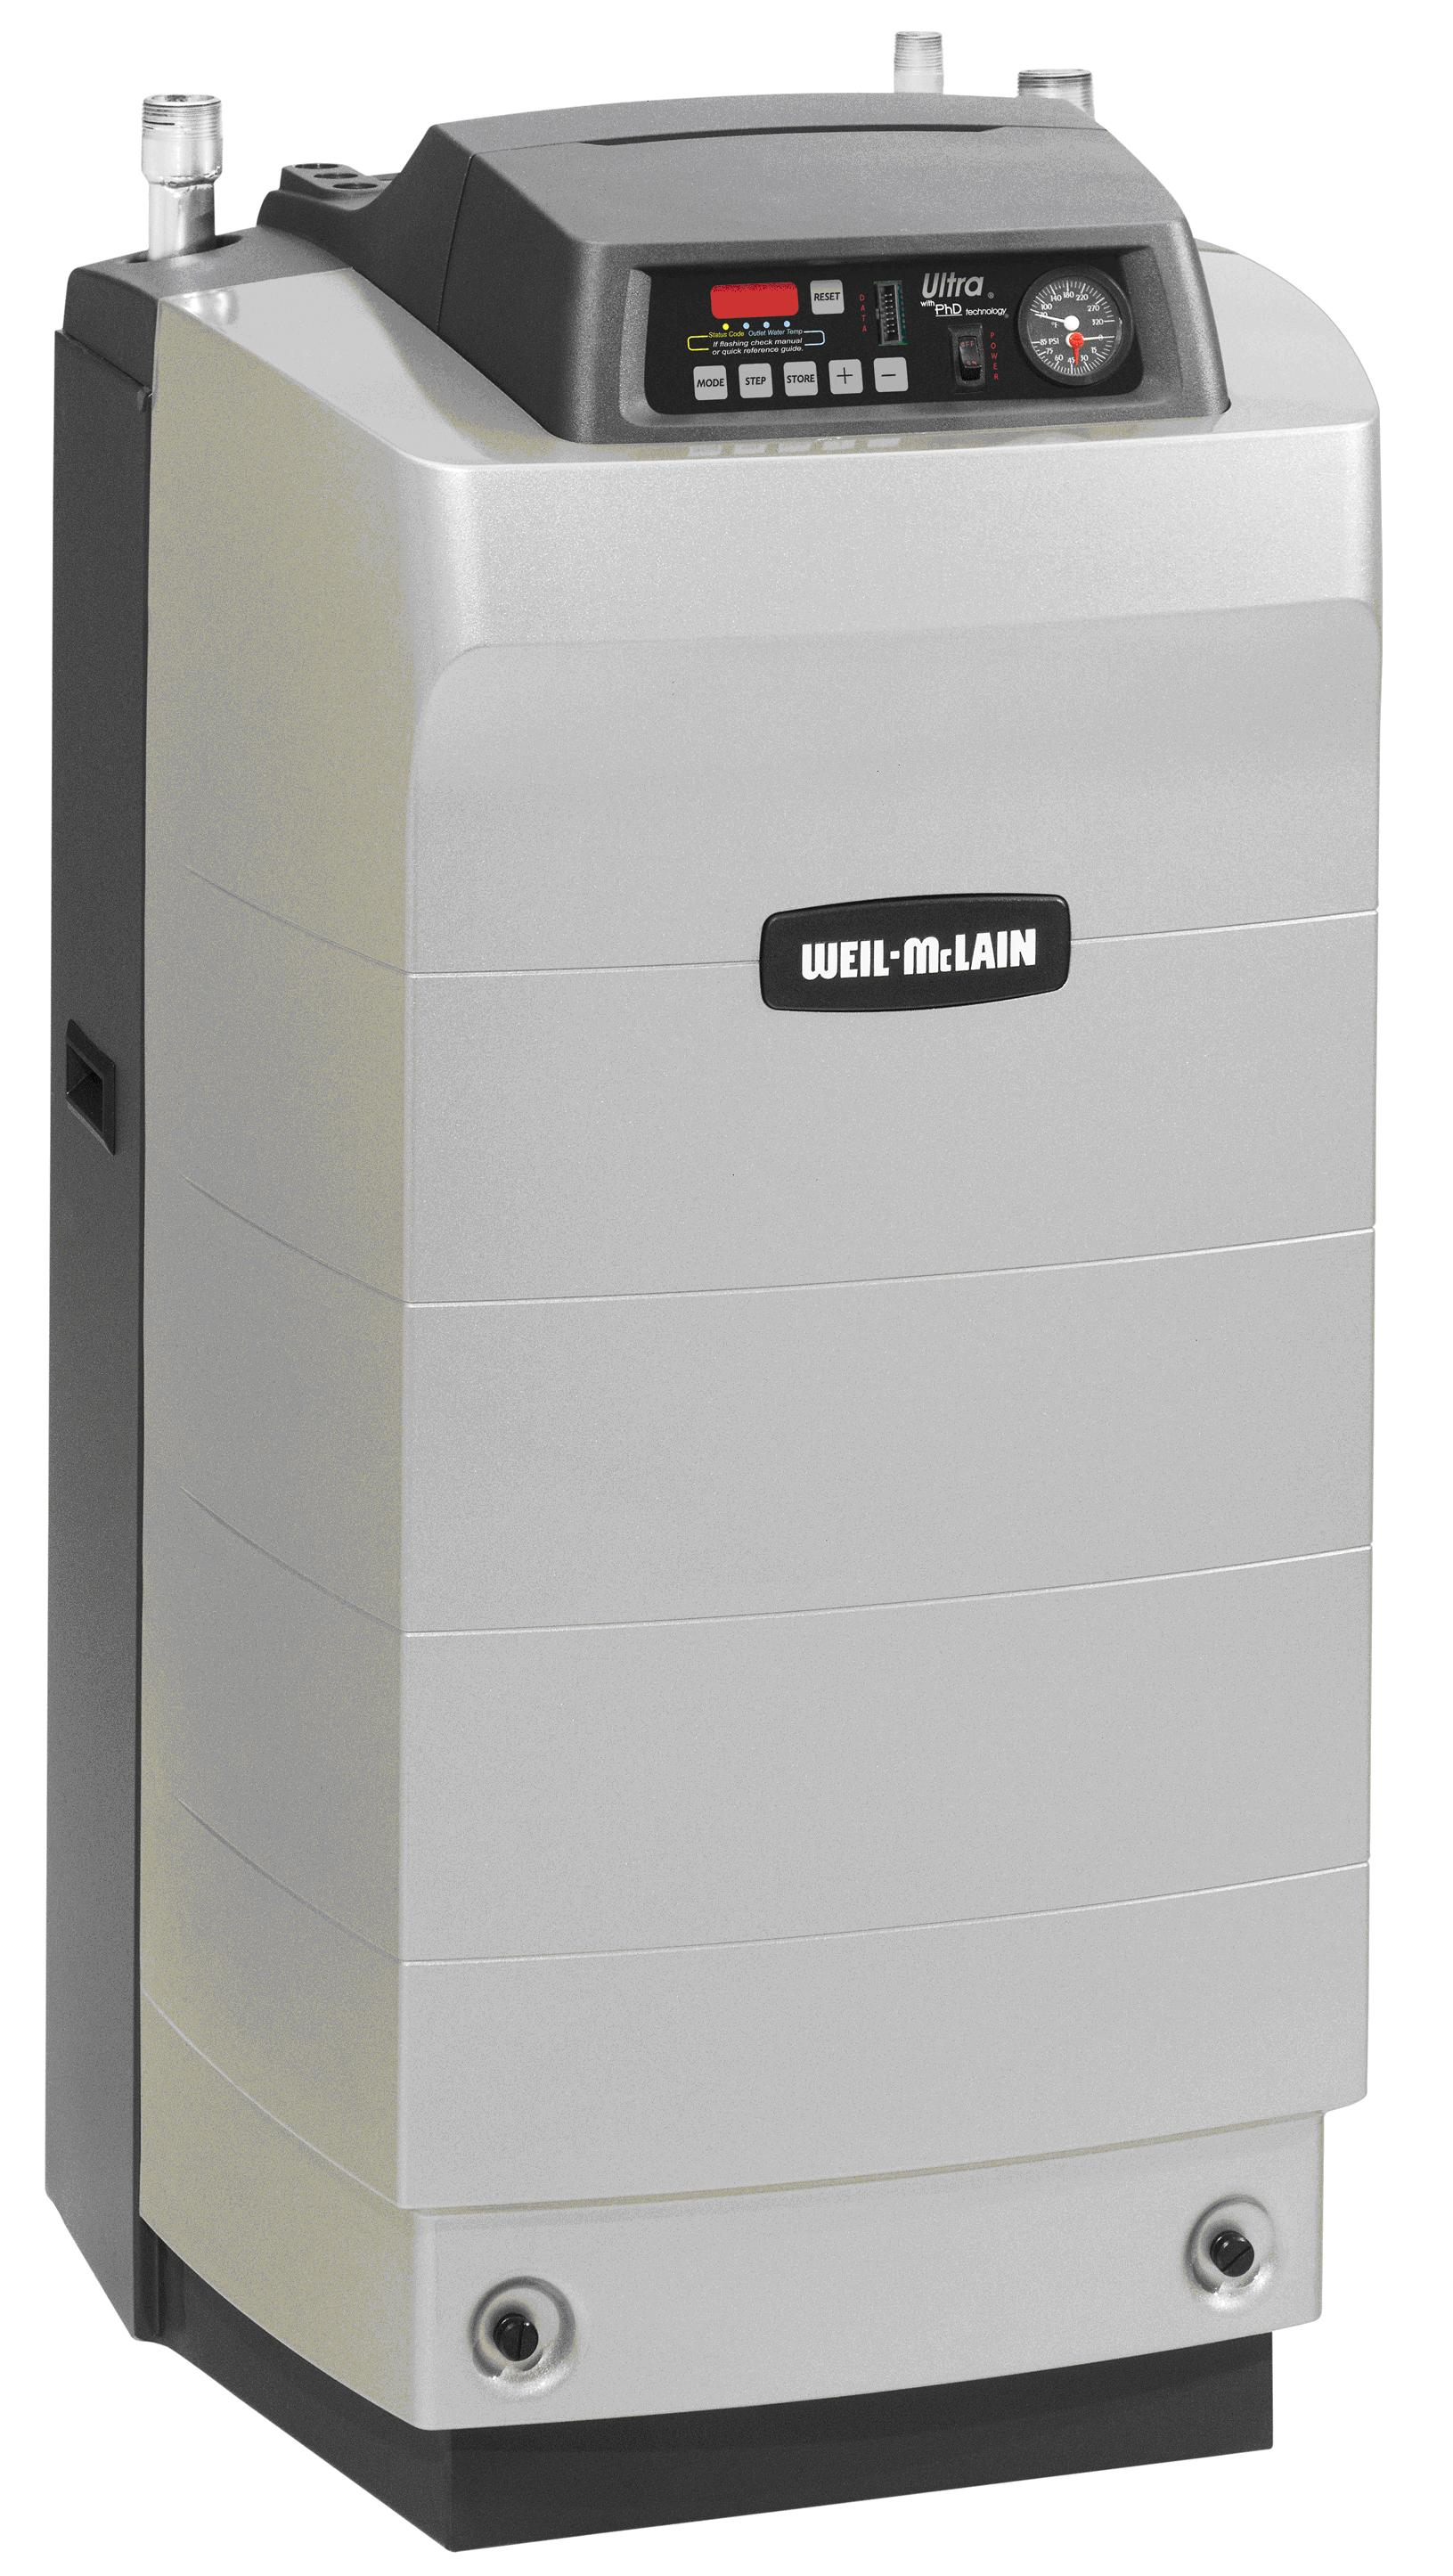 hight resolution of picture of recalled gas boiler